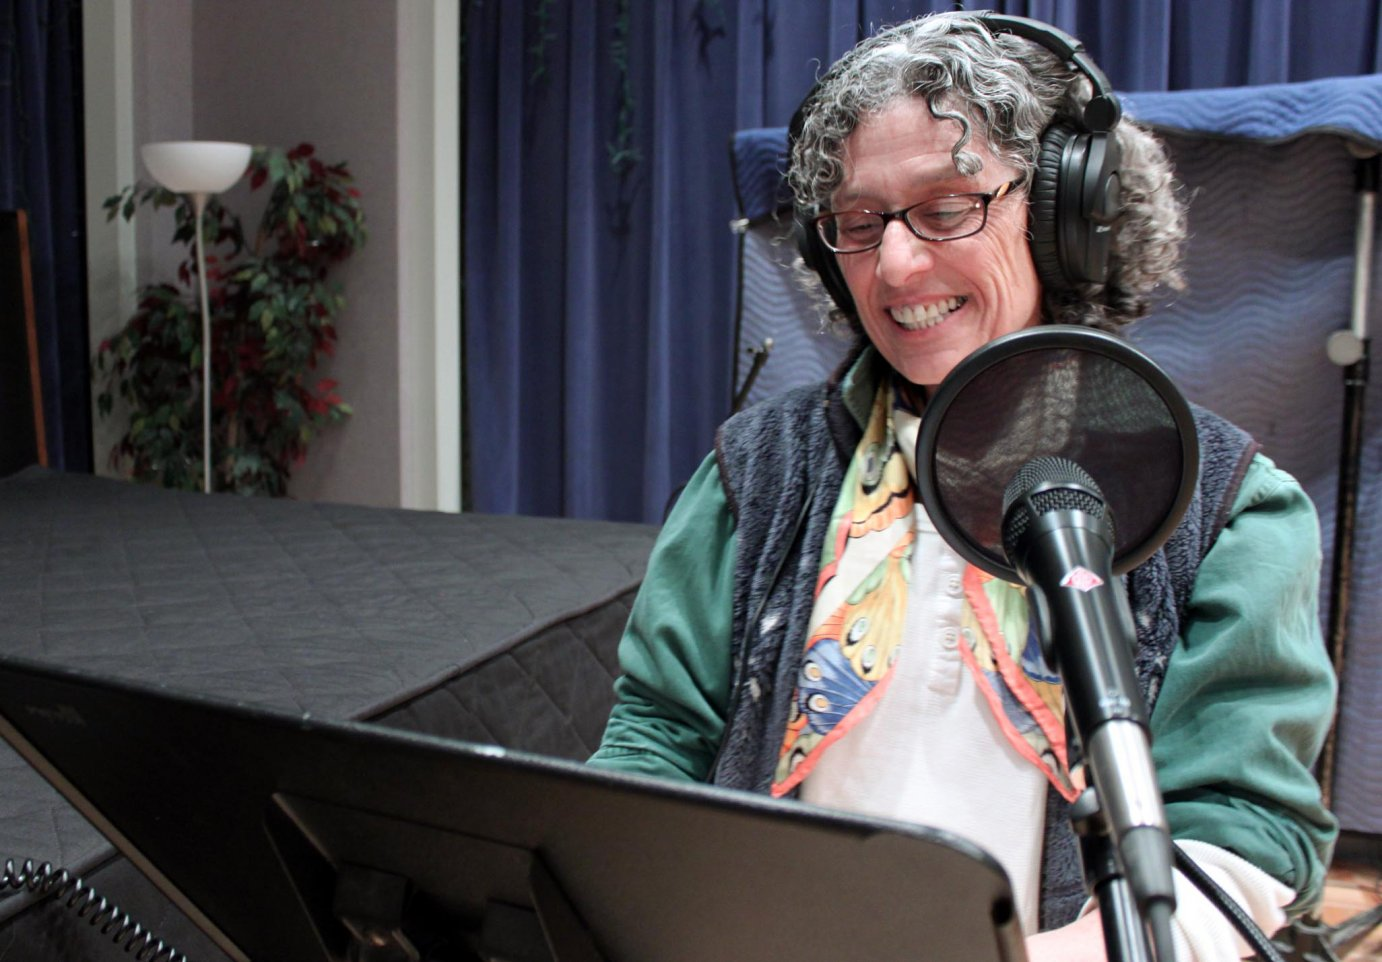 Randi Hacker drops by the KPR studios about every eight weeks to record Postcards from Abroad. (Photo by Joanna Fewins/KPR)